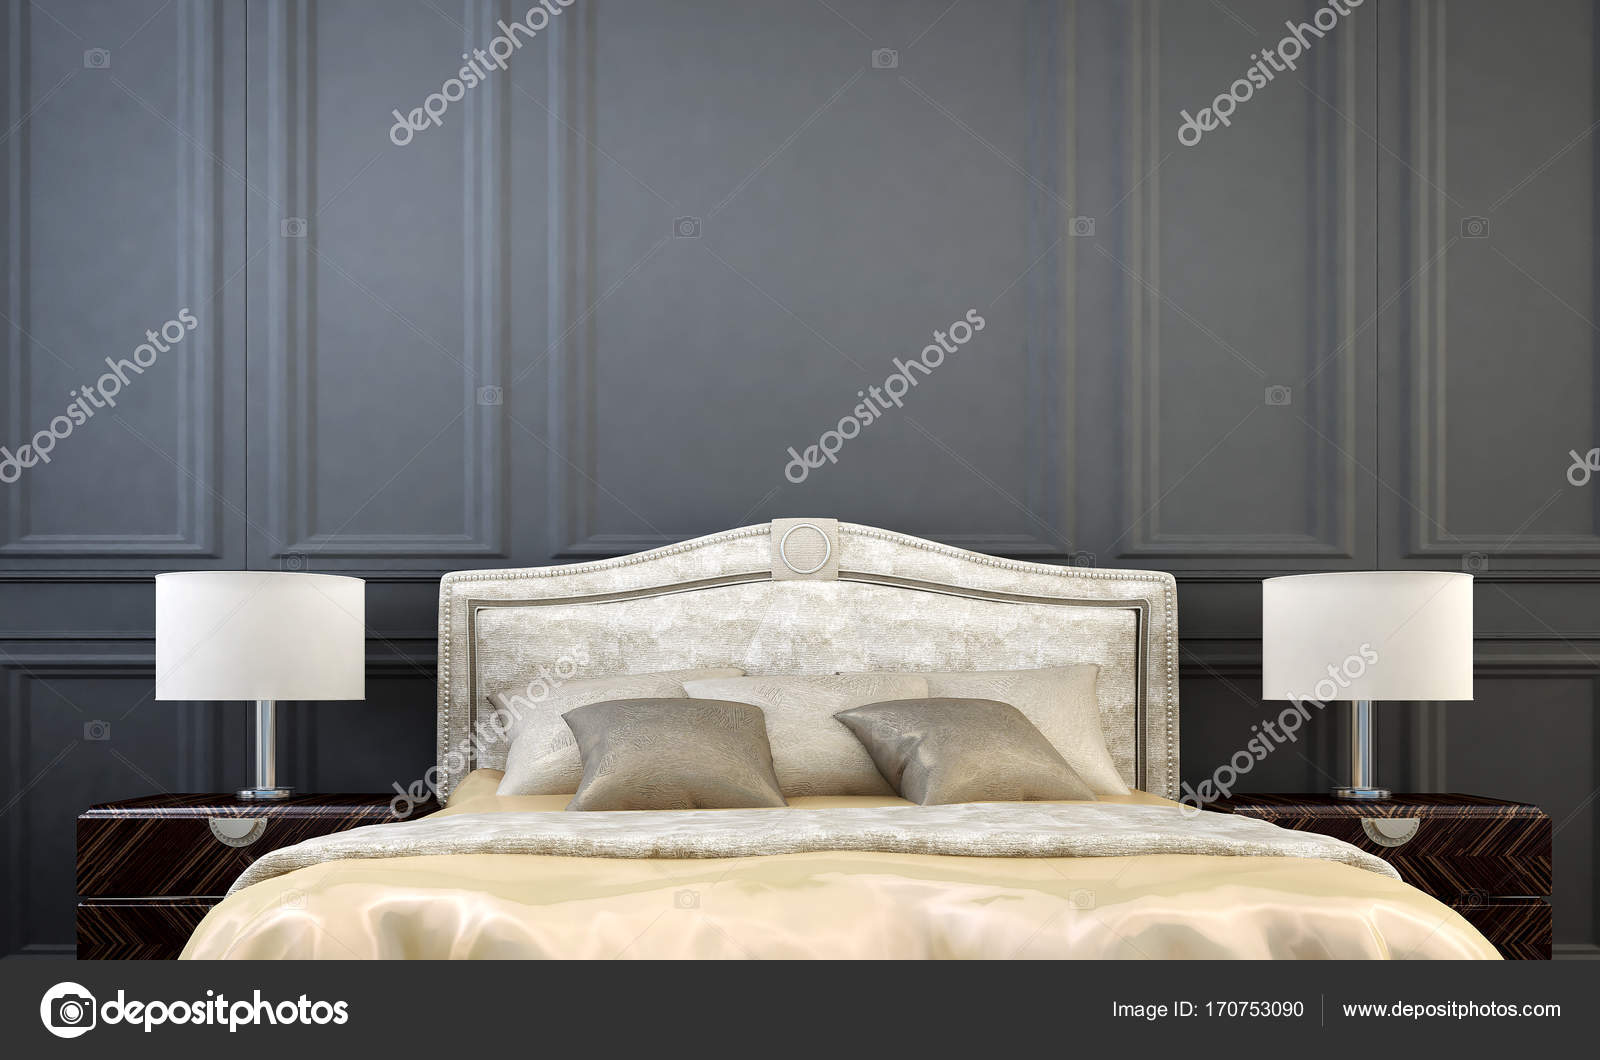 The Luxury Bedroom Interior Design And Grey Wall Pattern Background Stock Photo C Teeraphan 170753090